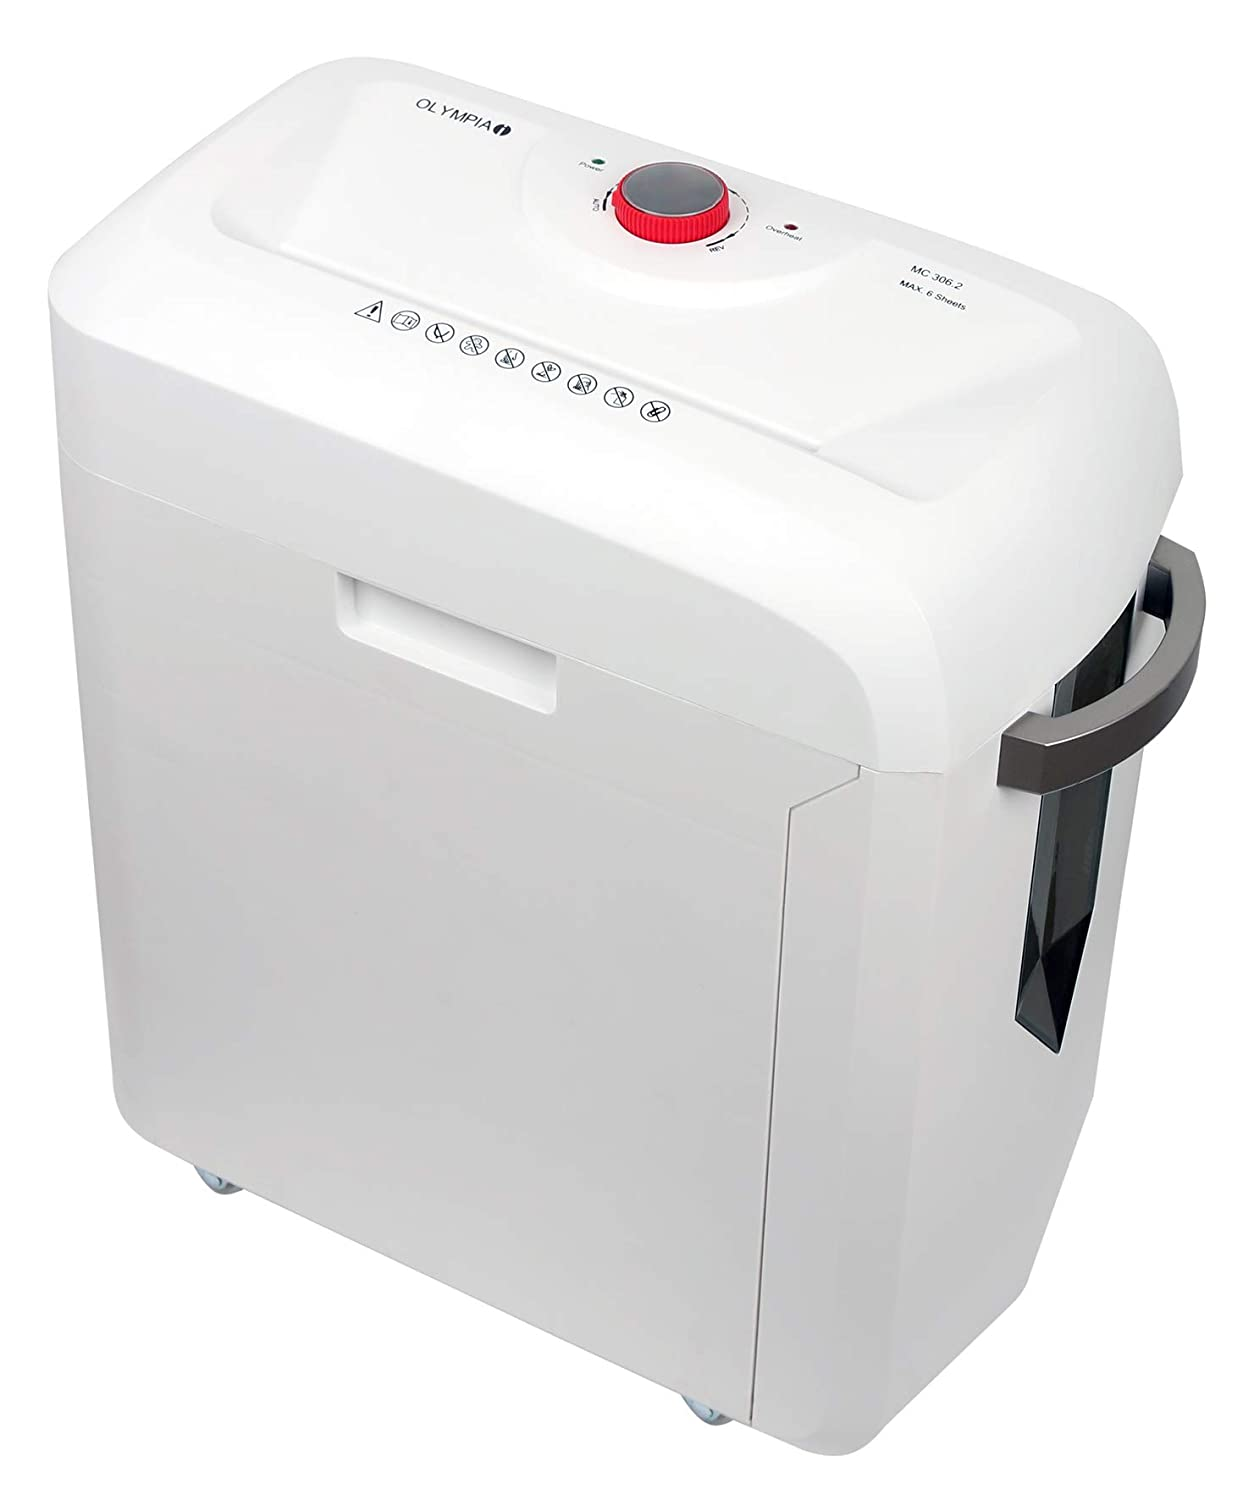 Olympia MC 306.2 Micro-cut shredding 62dB White paper shredder - Paper Shredders (Micro-cut shredding, 22 cm, 19 L, 62 dB, 2 x 15, White)